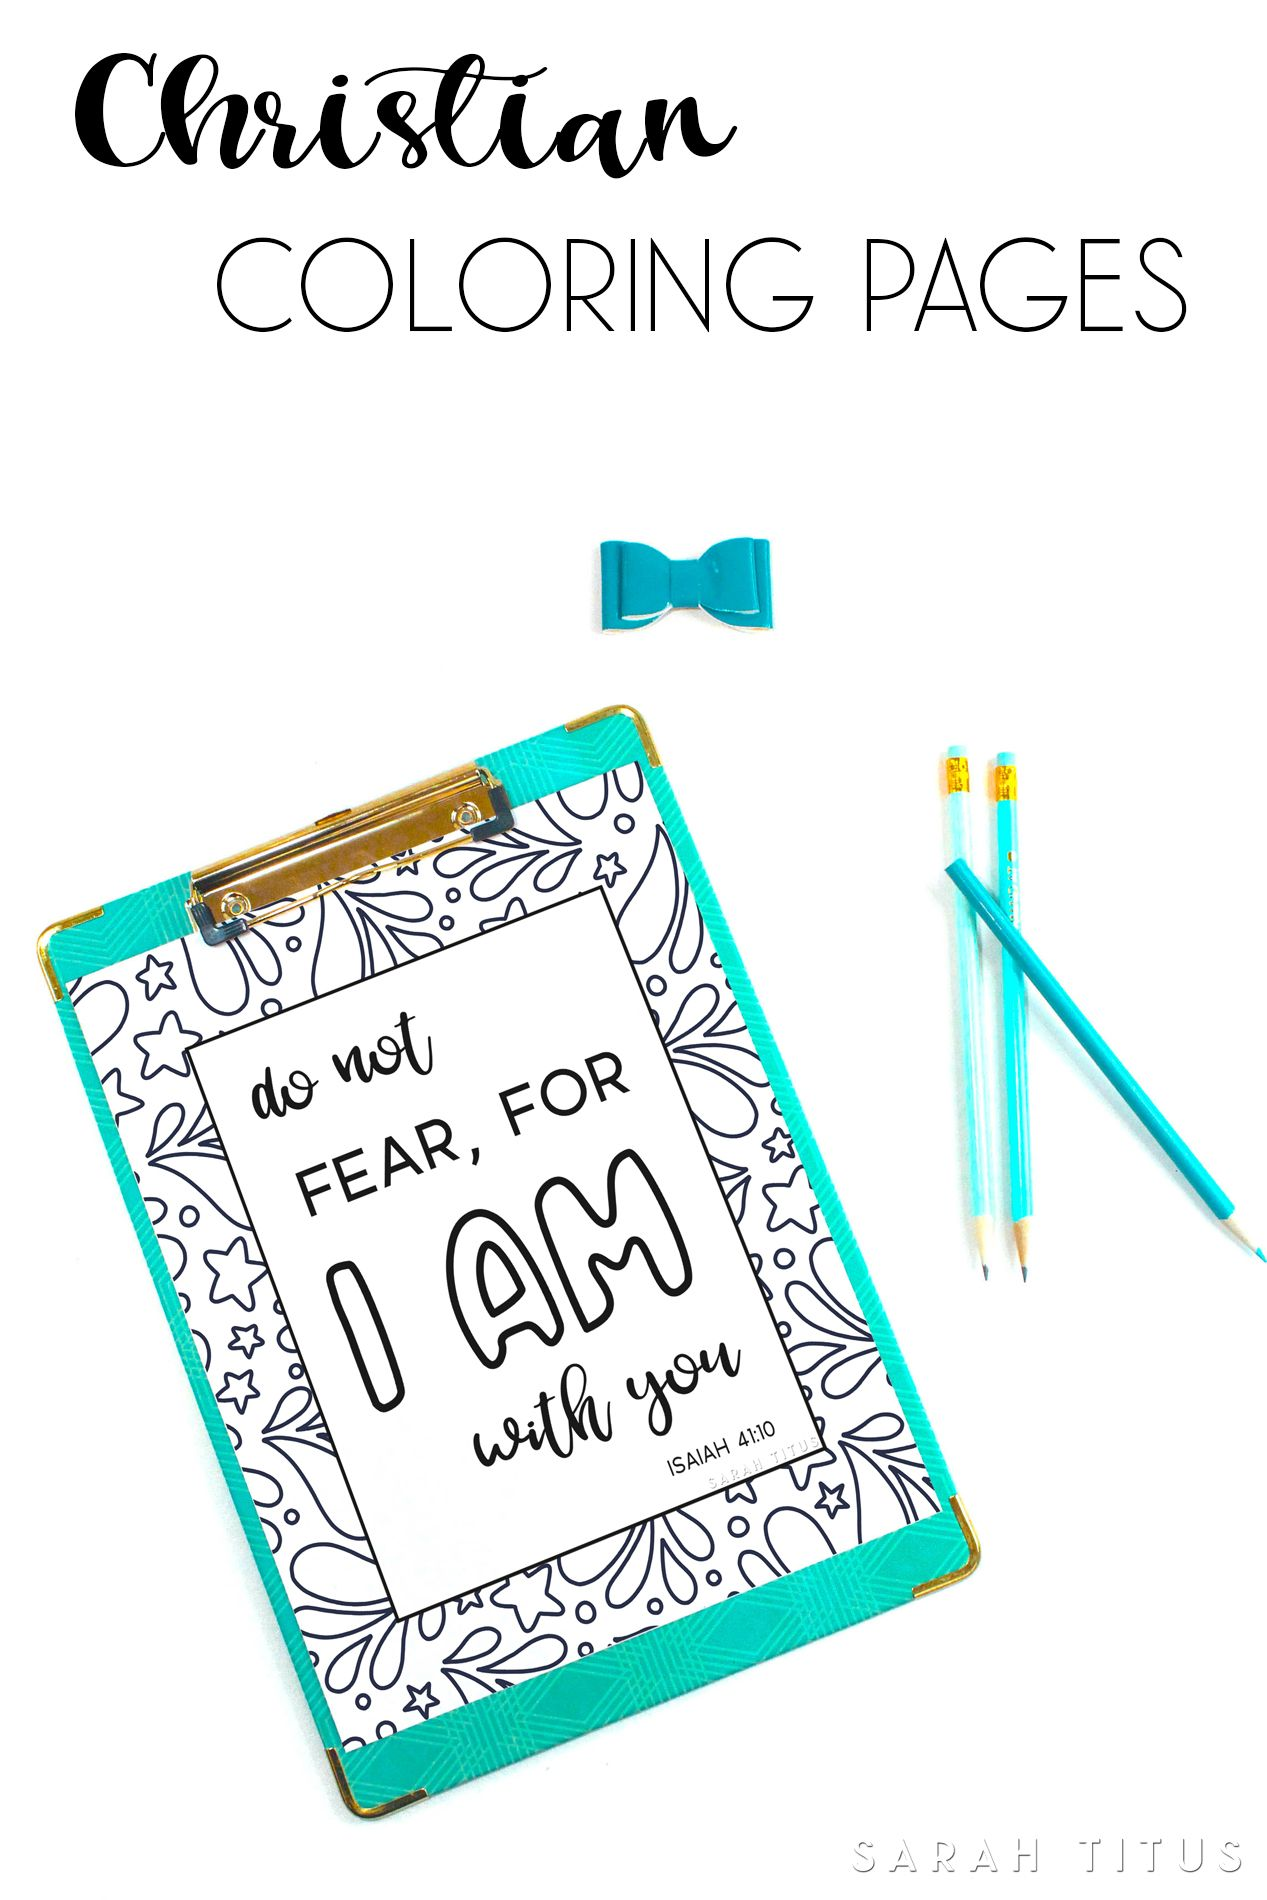 Christian Coloring Pages | Frugal and Money Saving Group Board ...